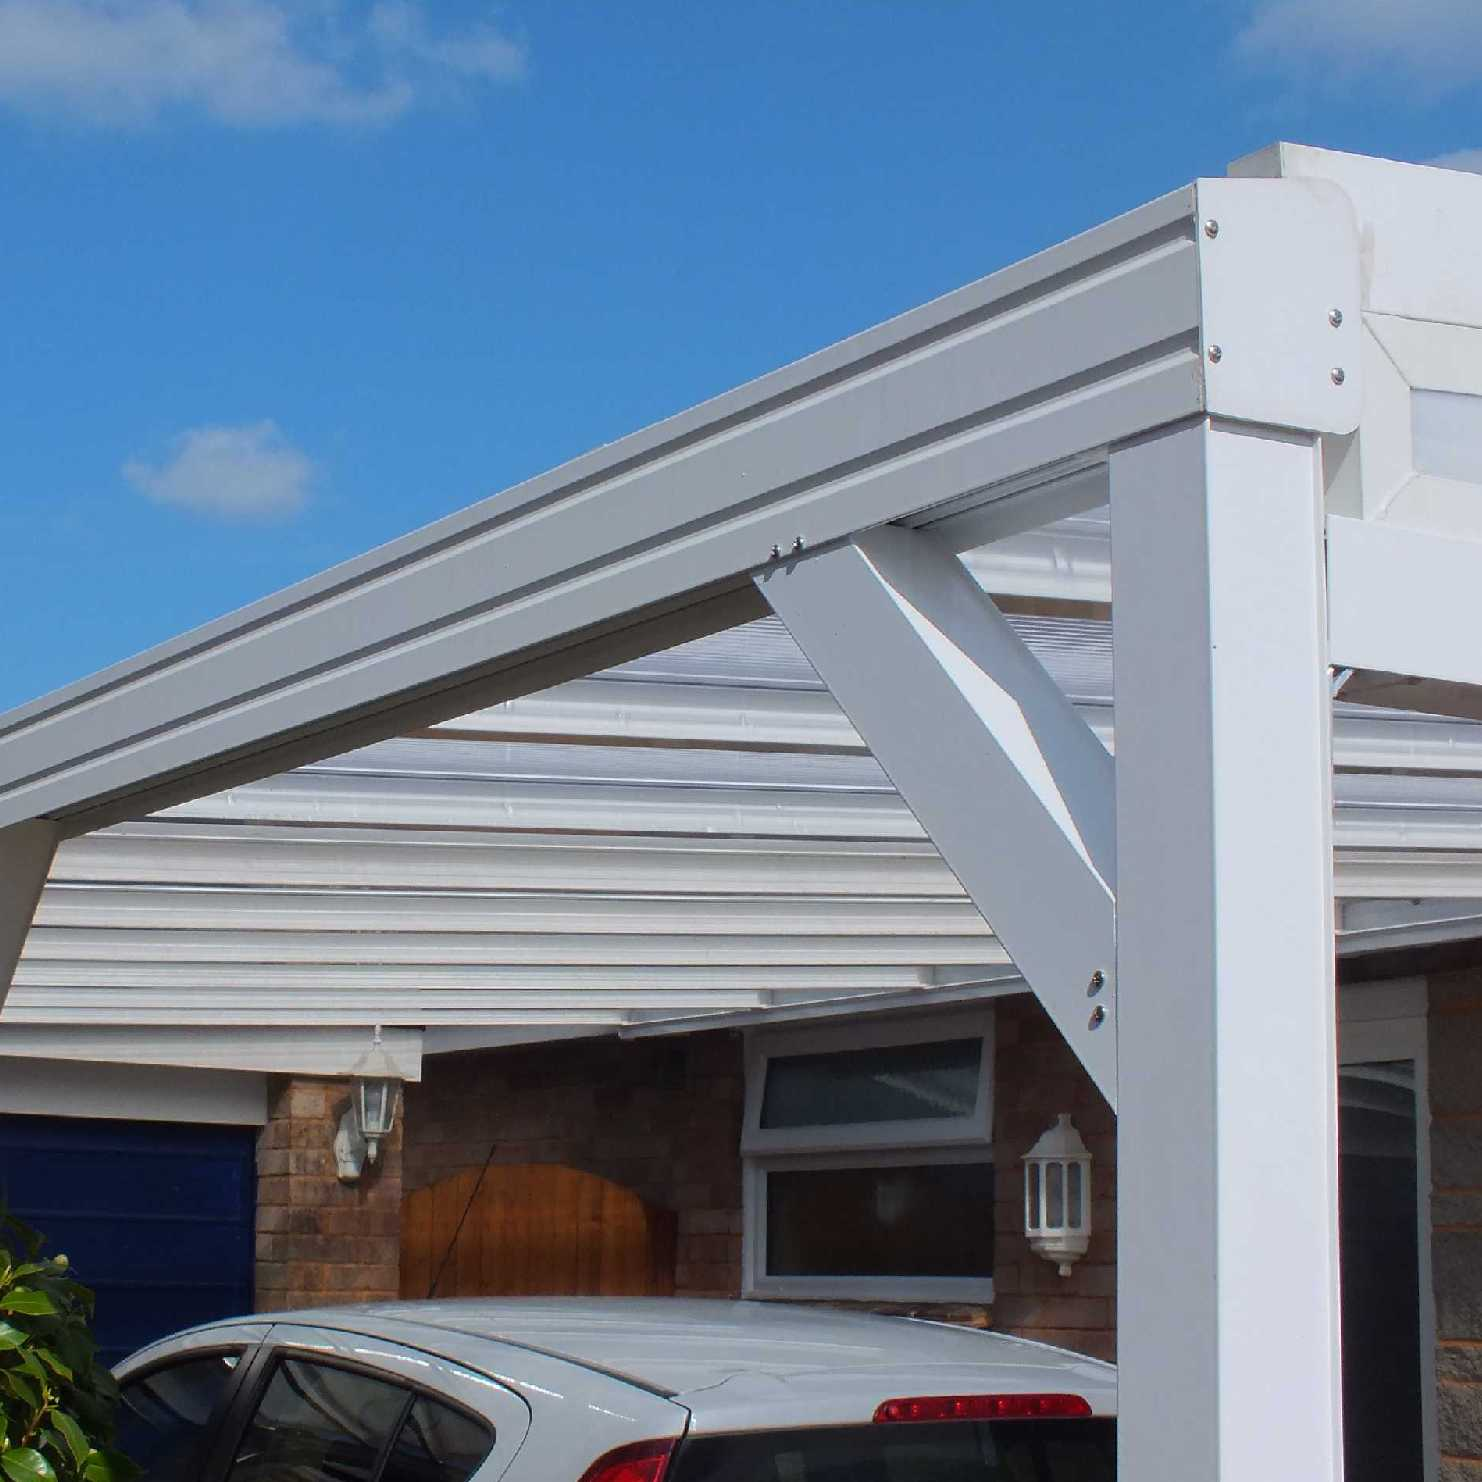 Buy Omega Smart White Lean-To Canopy with 16mm Polycarbonate Glazing - 6.3m (W) x 3.5m (P), (4) Supporting Posts online today